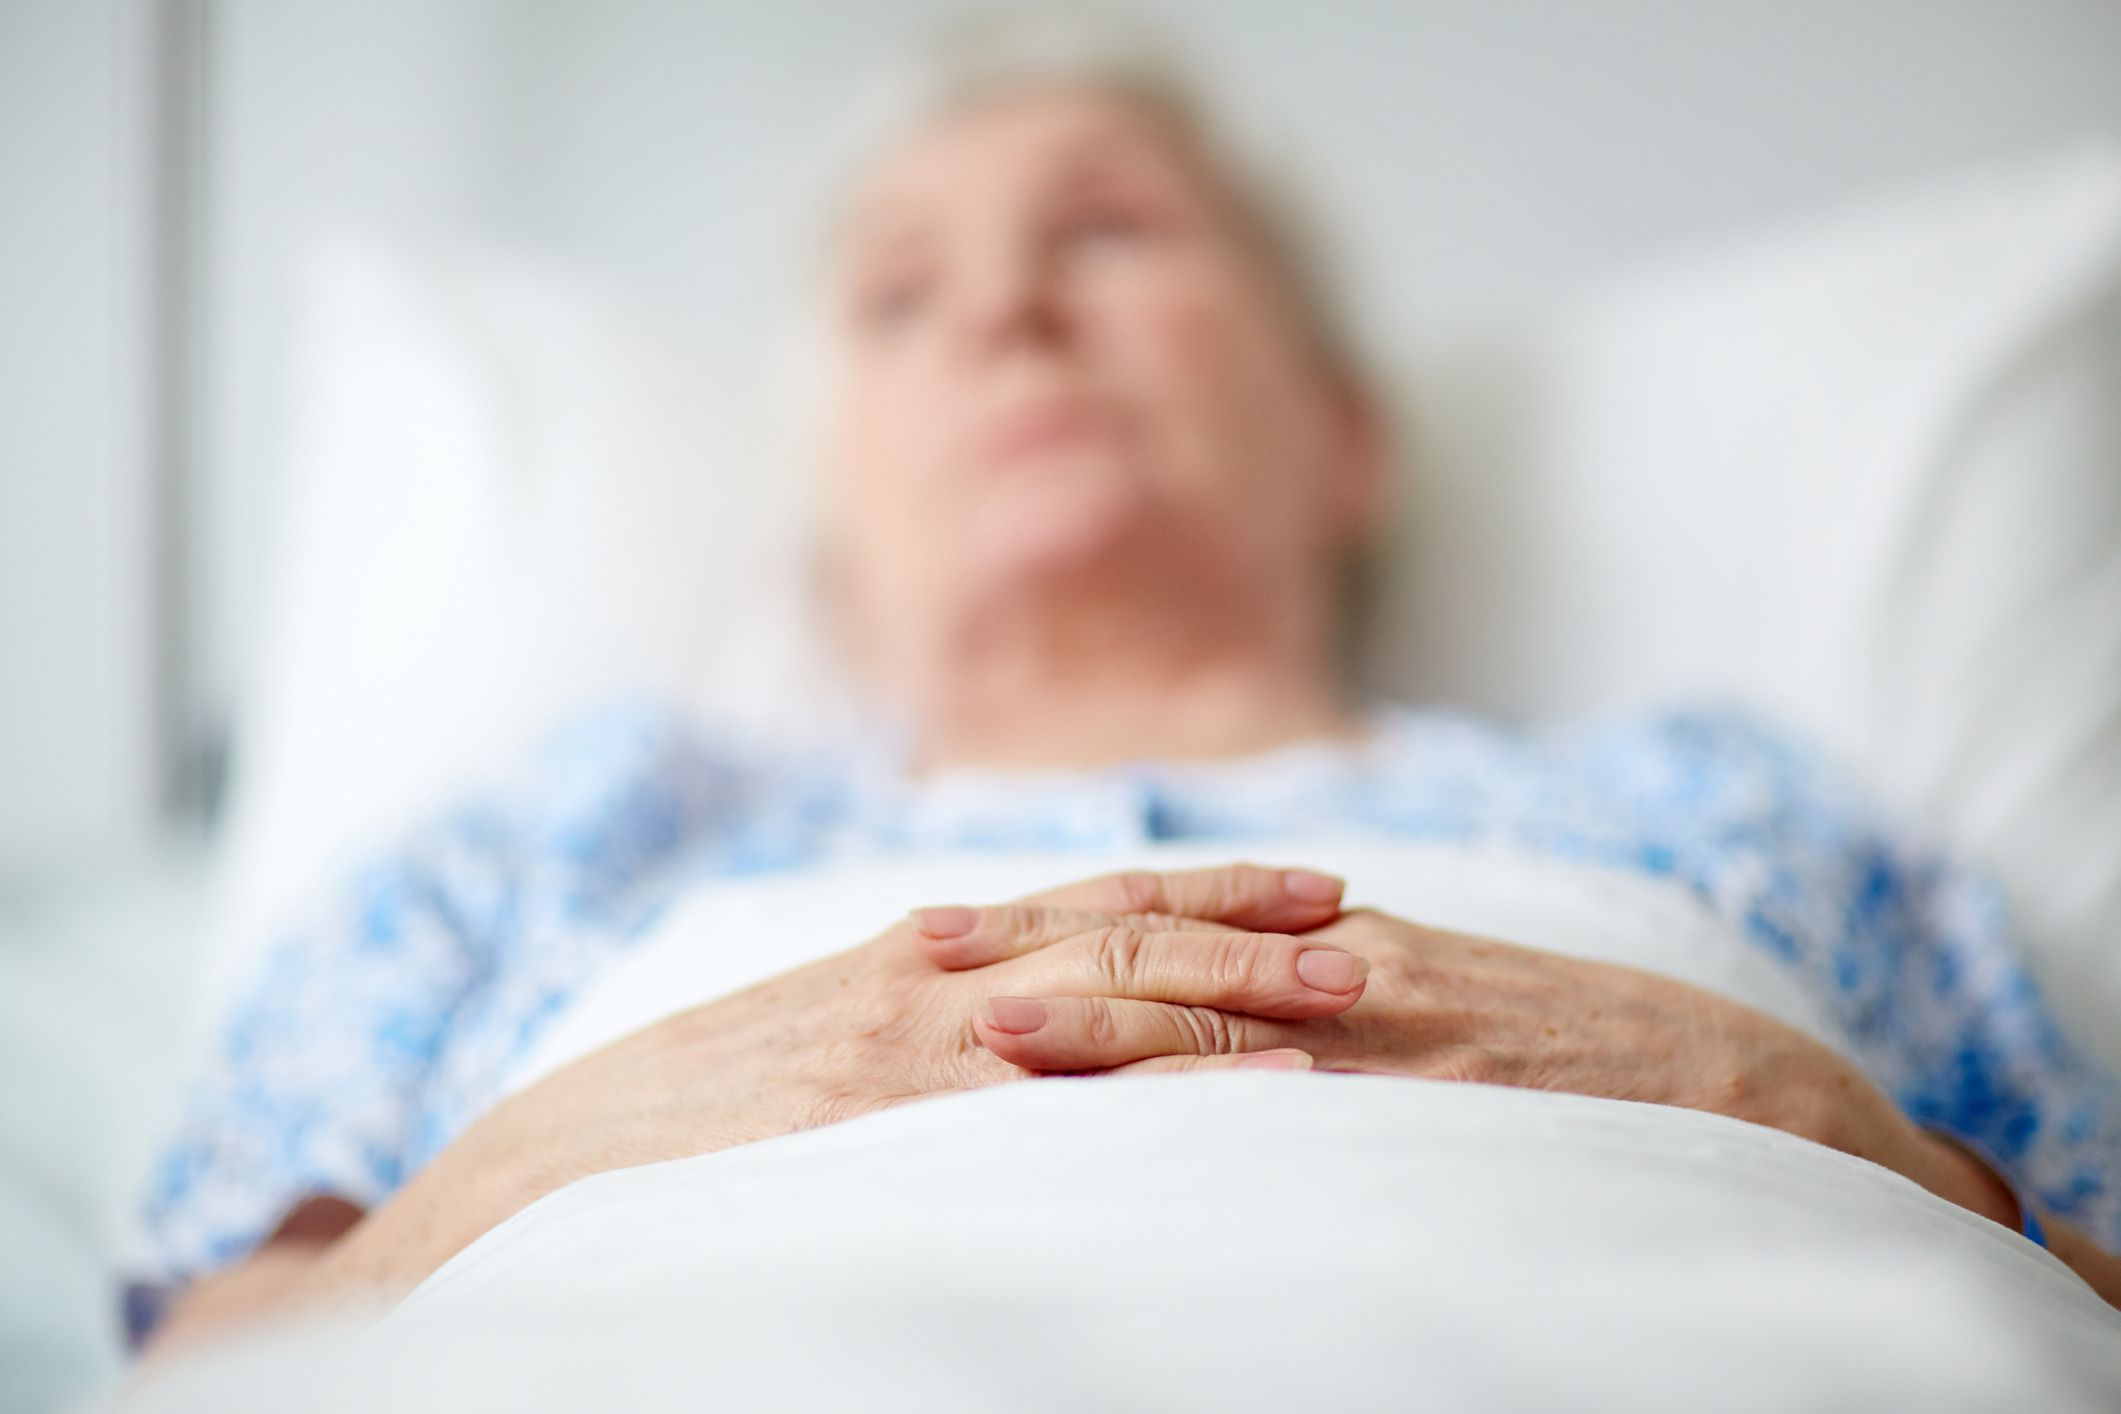 A person in a hospital bed